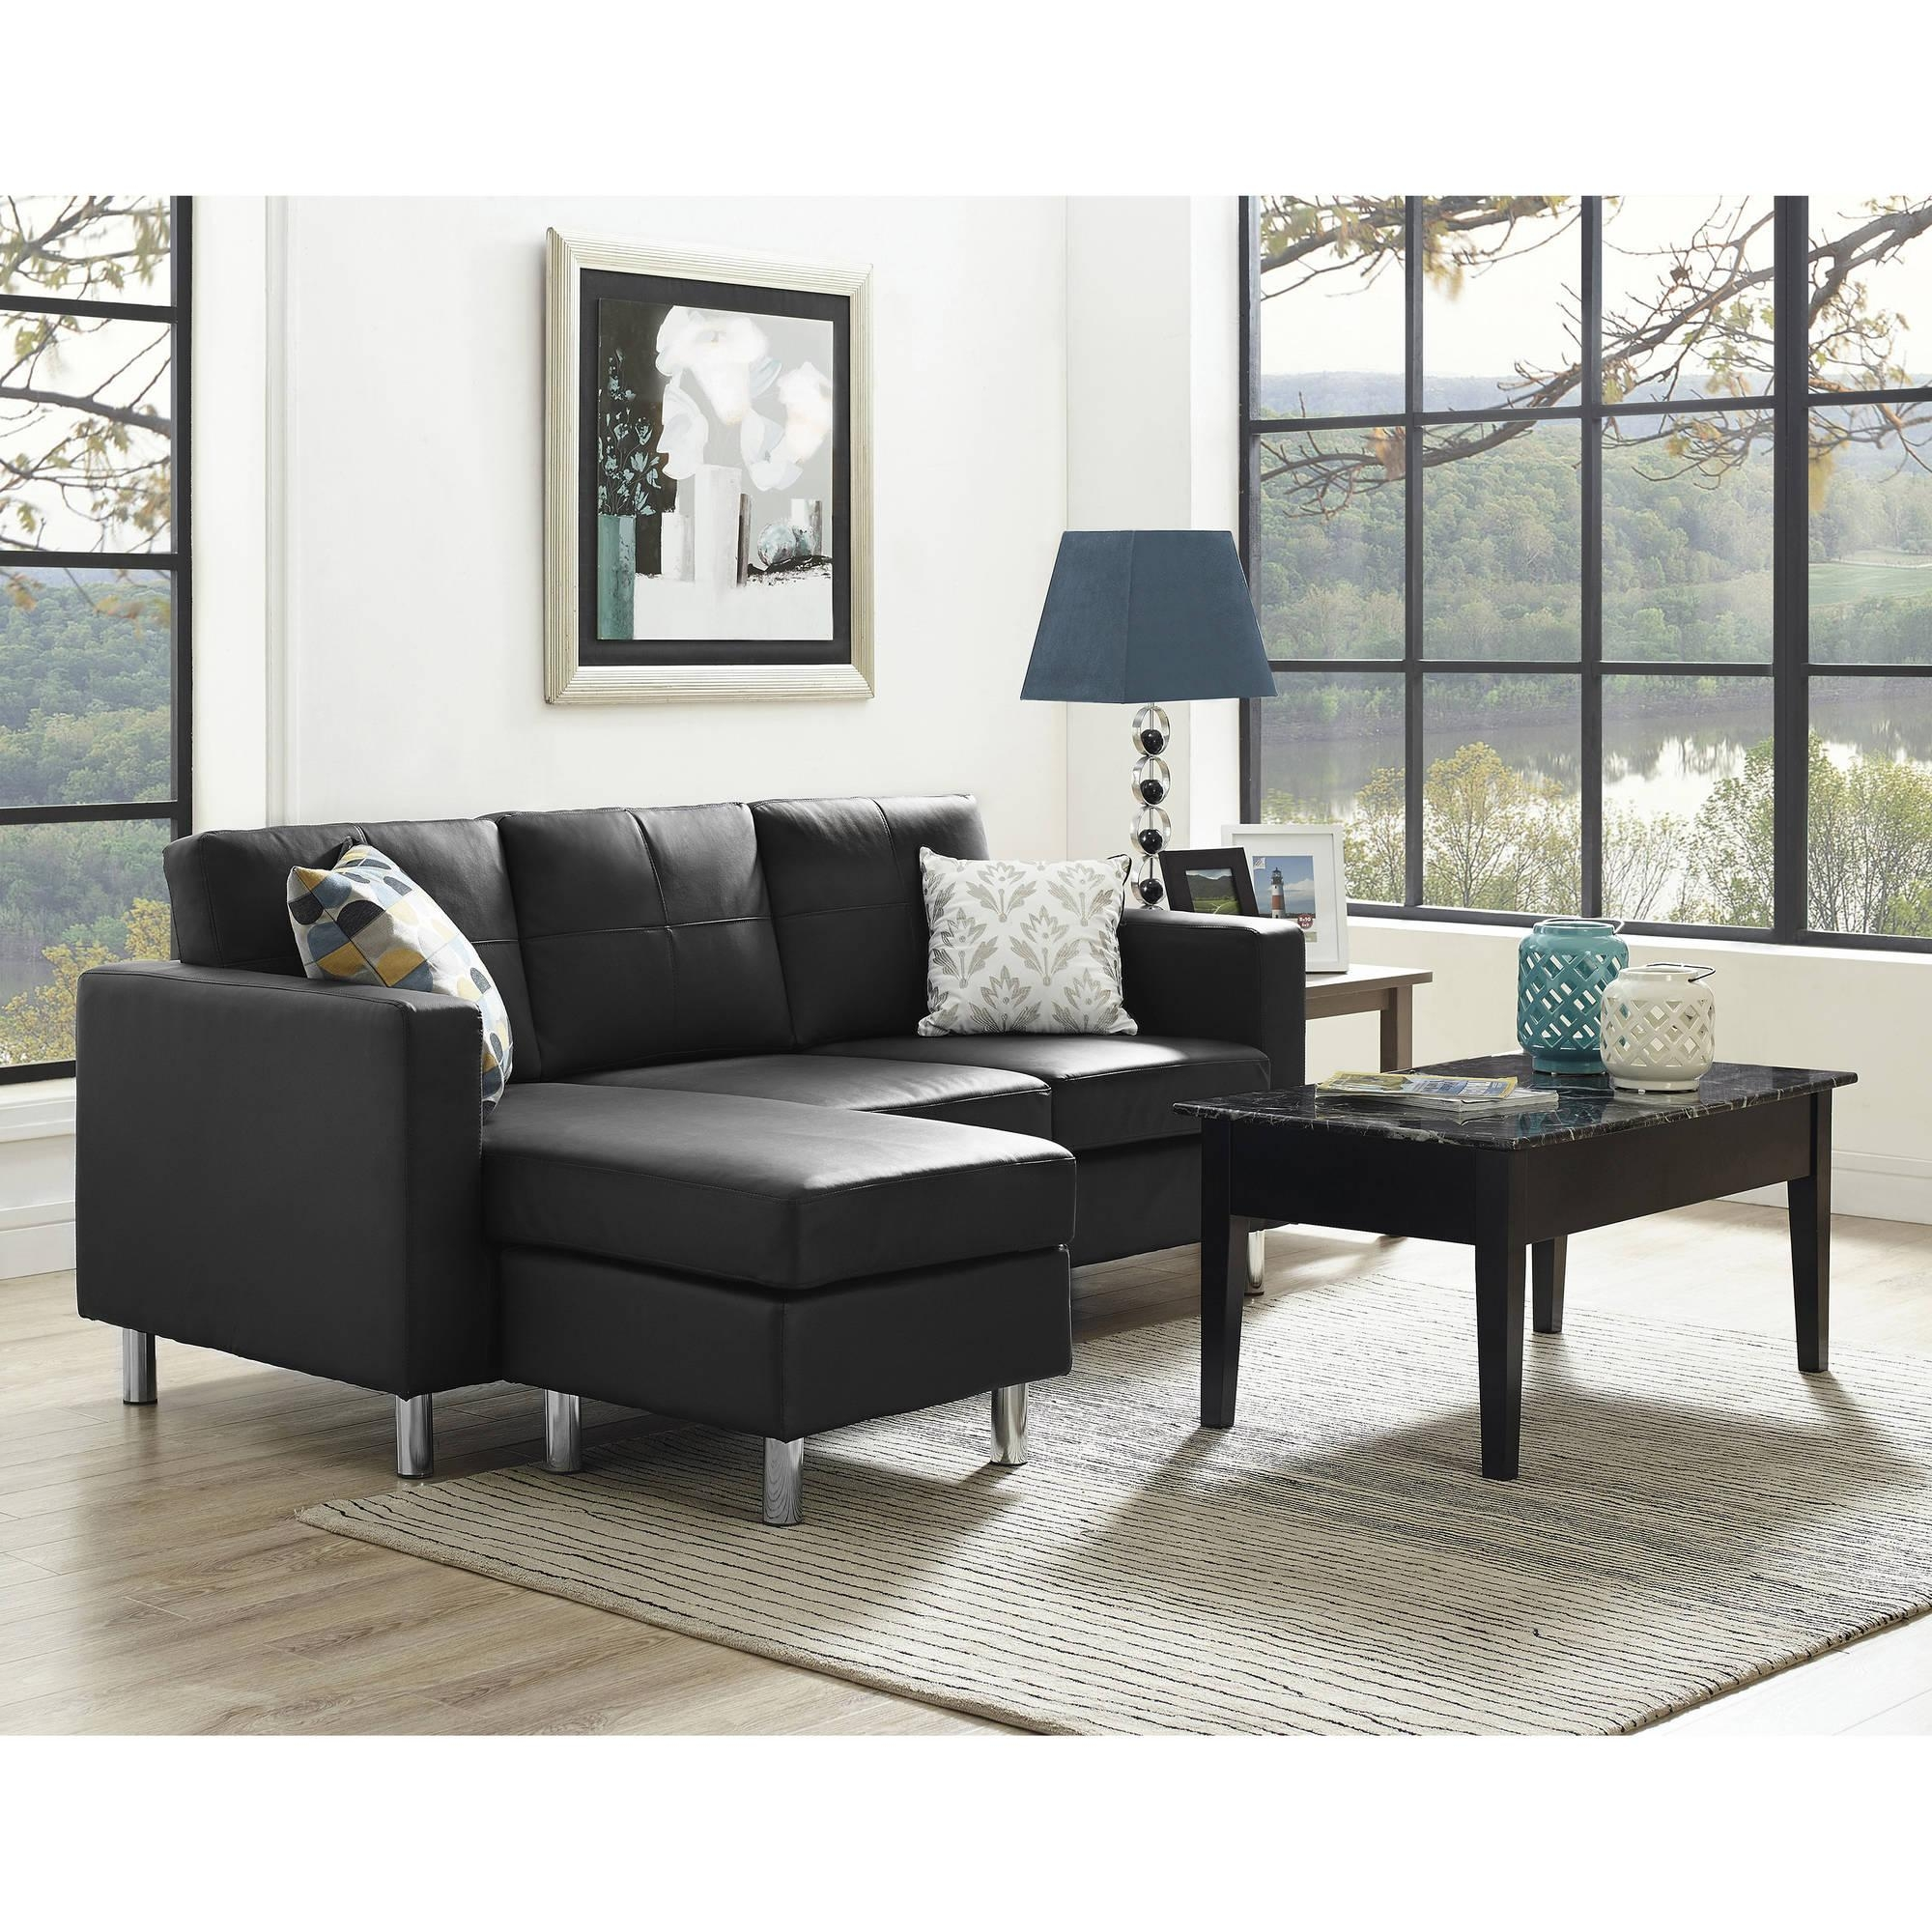 Dorel Living Small Spaces Configurable Sectional Sofa, Multiple With Regard To Sectional Ideas For Small Rooms (View 13 of 20)